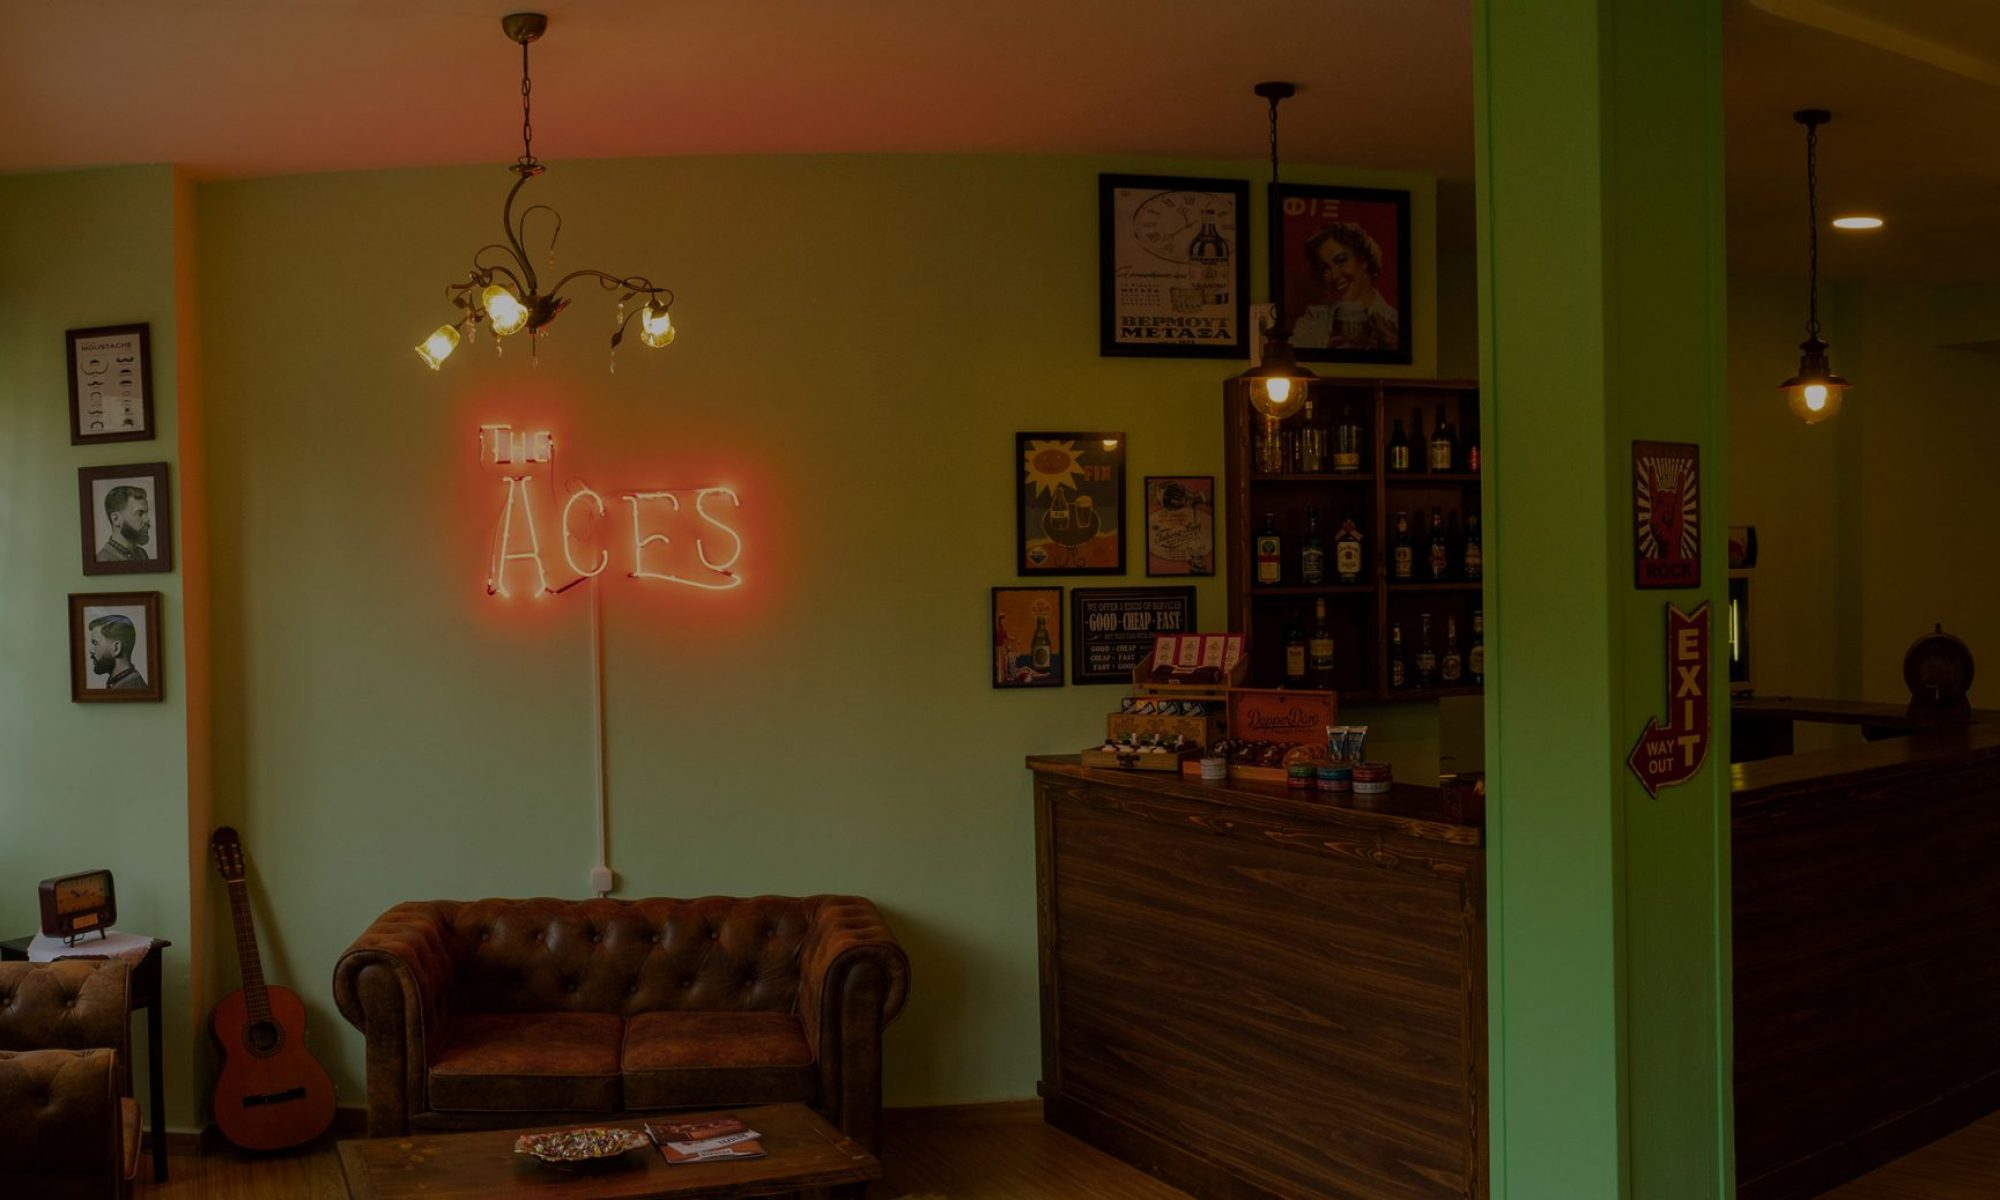 The ACES BARBERSHOP